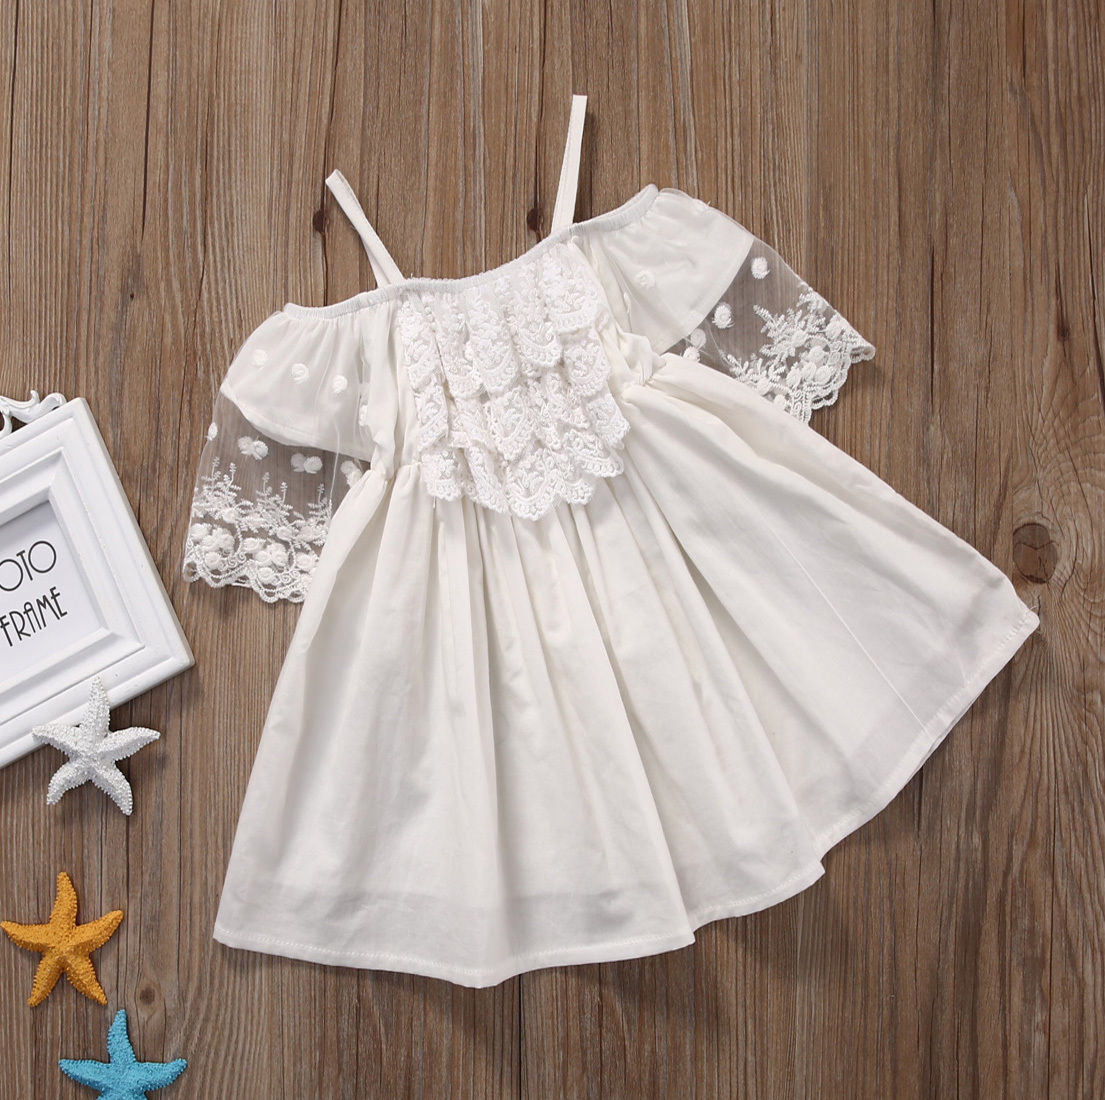 Lace-Girl-Clothing-Princess-Dress-Kid-Baby-Party-Wedding-Pageant-Formal-Mini-Cute-White-Dresses-Clothes-Baby-Girls-1